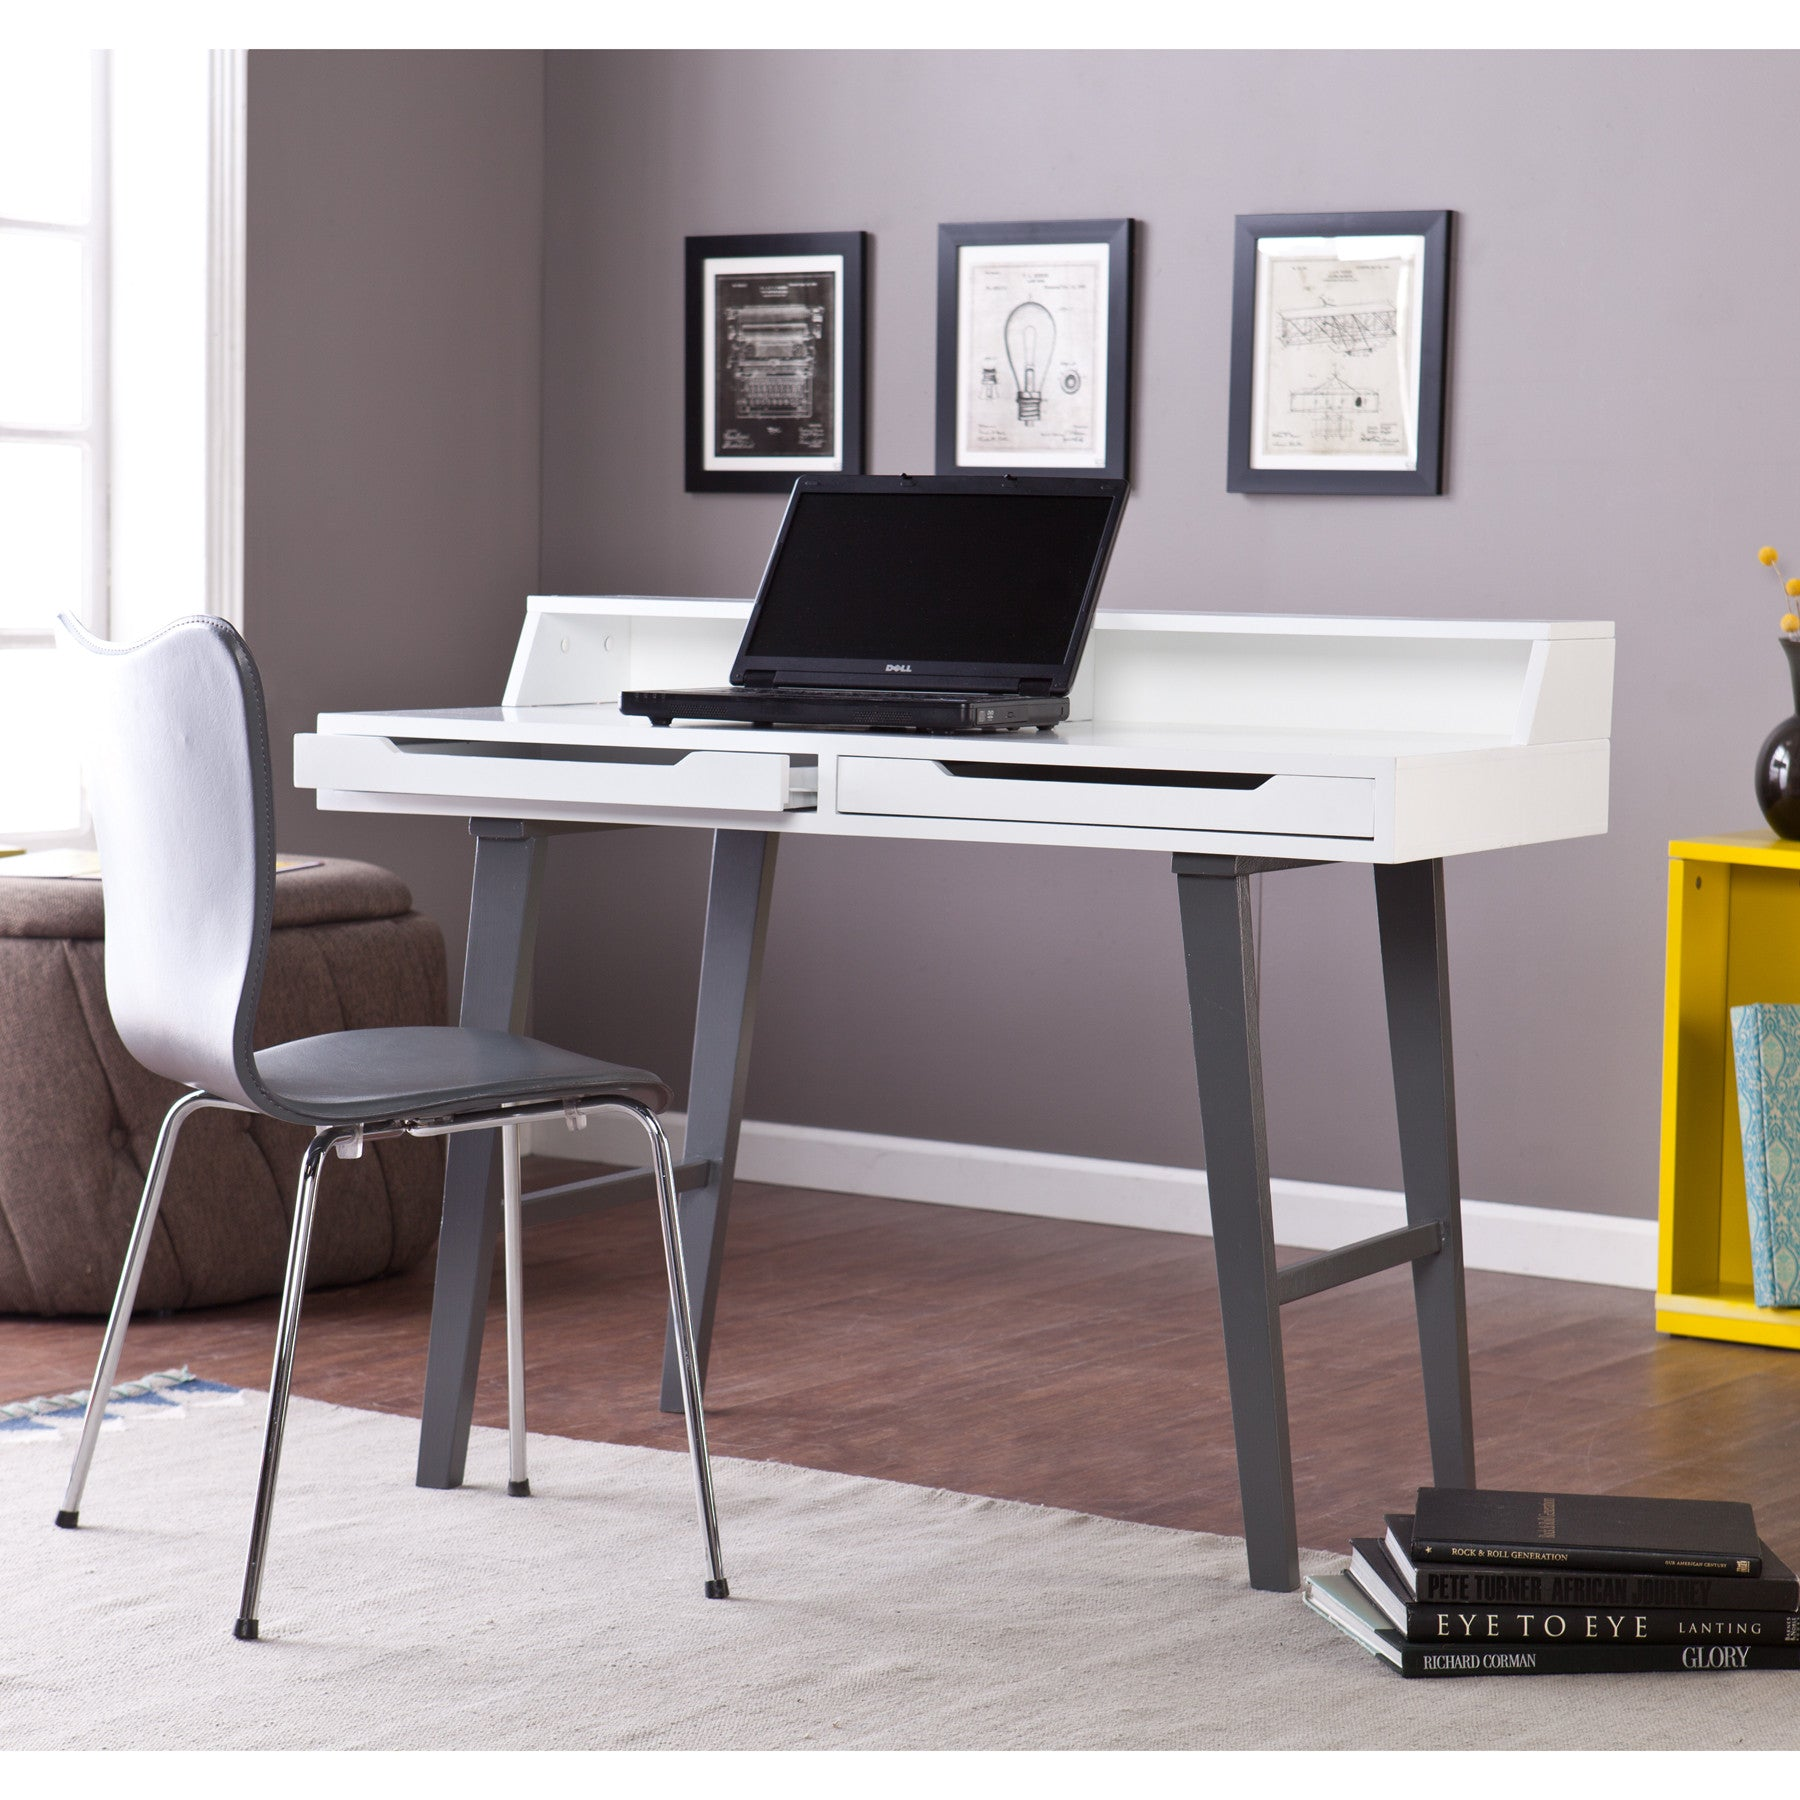 White Lacquer Office Desk with Two Drawers